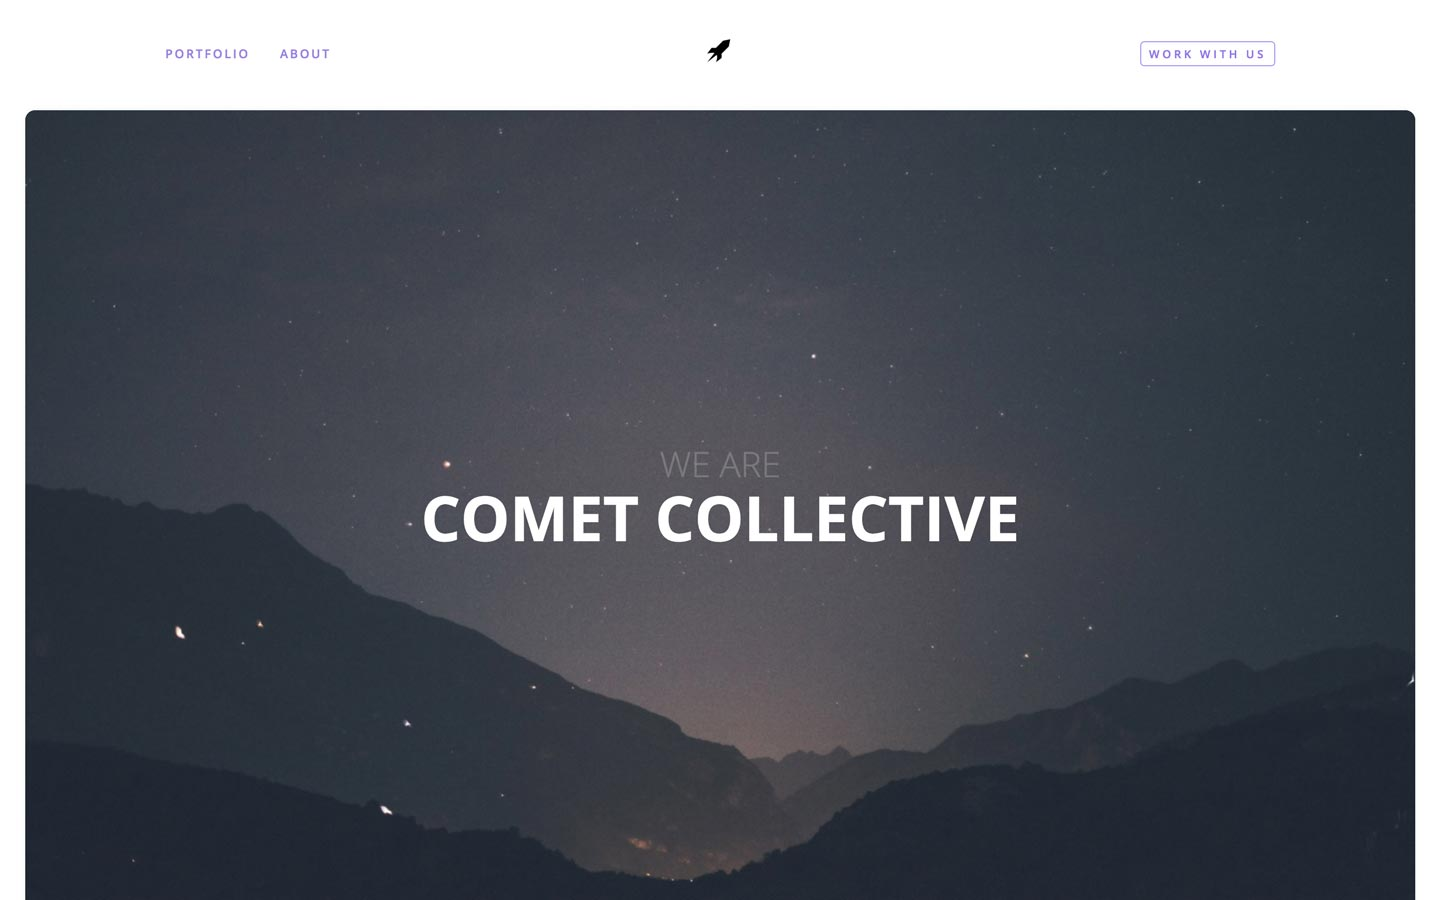 Comet Collective